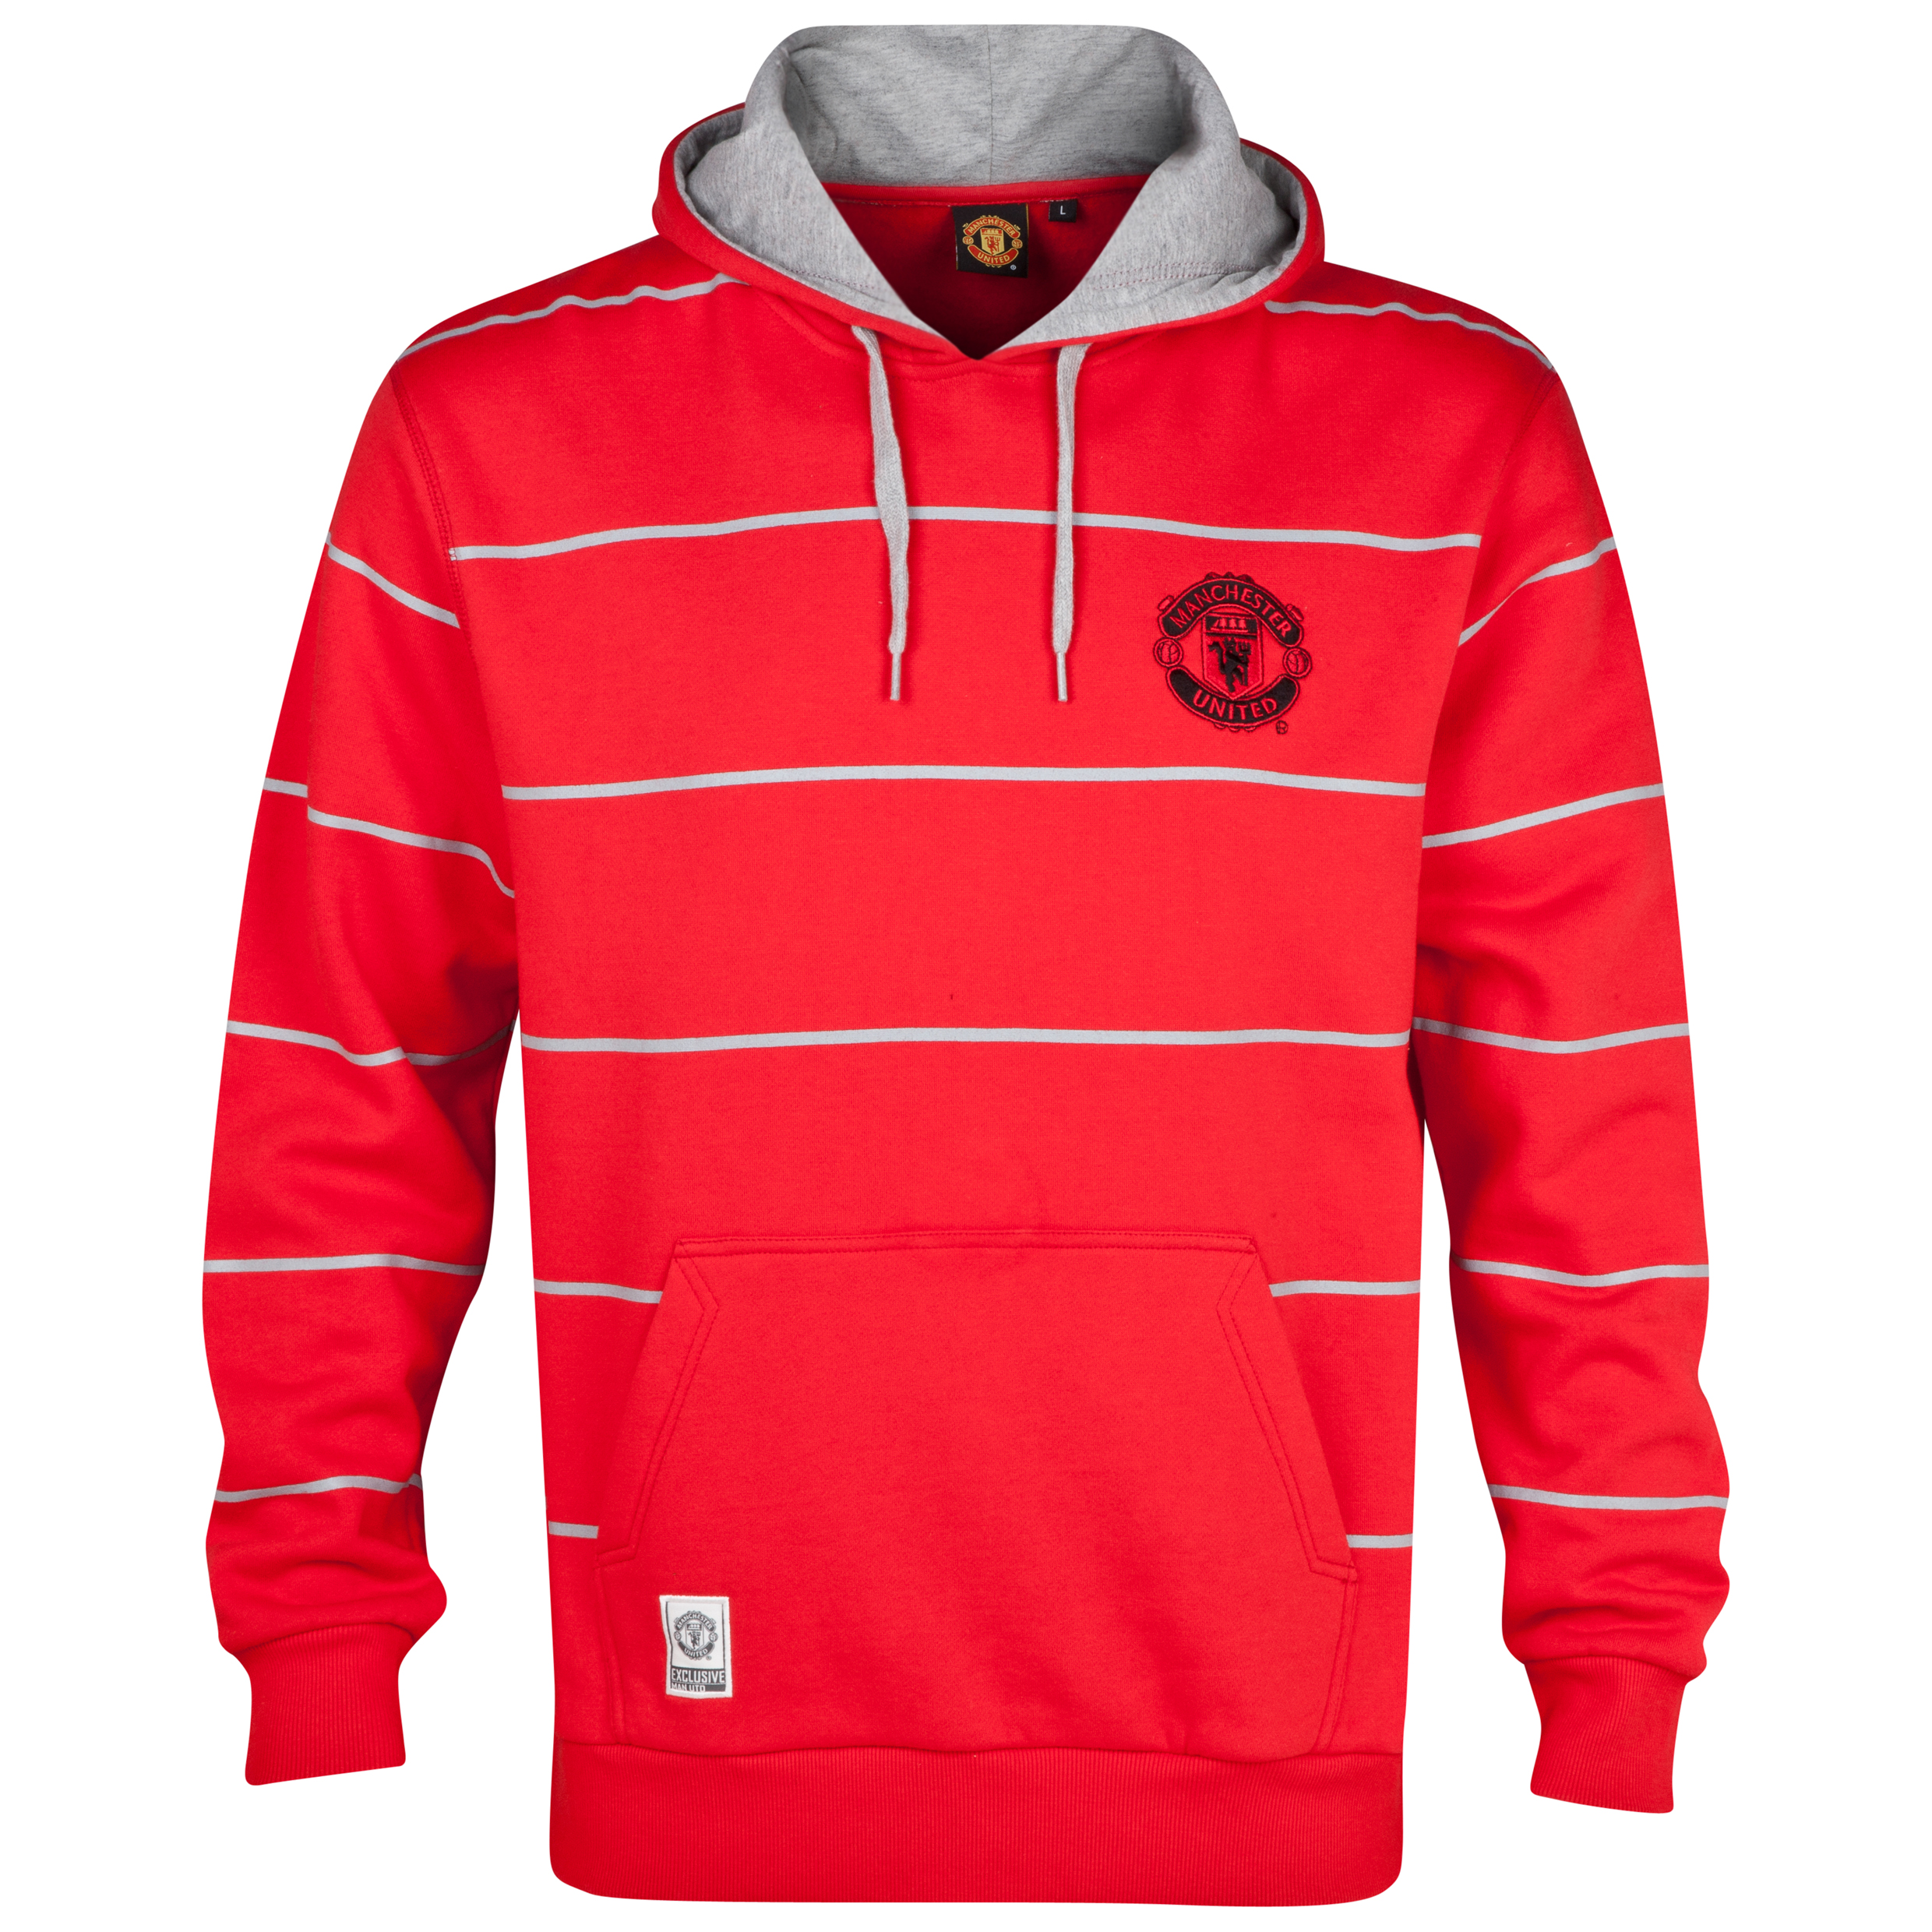 Manchester United Clsc Striped Hoody Mns